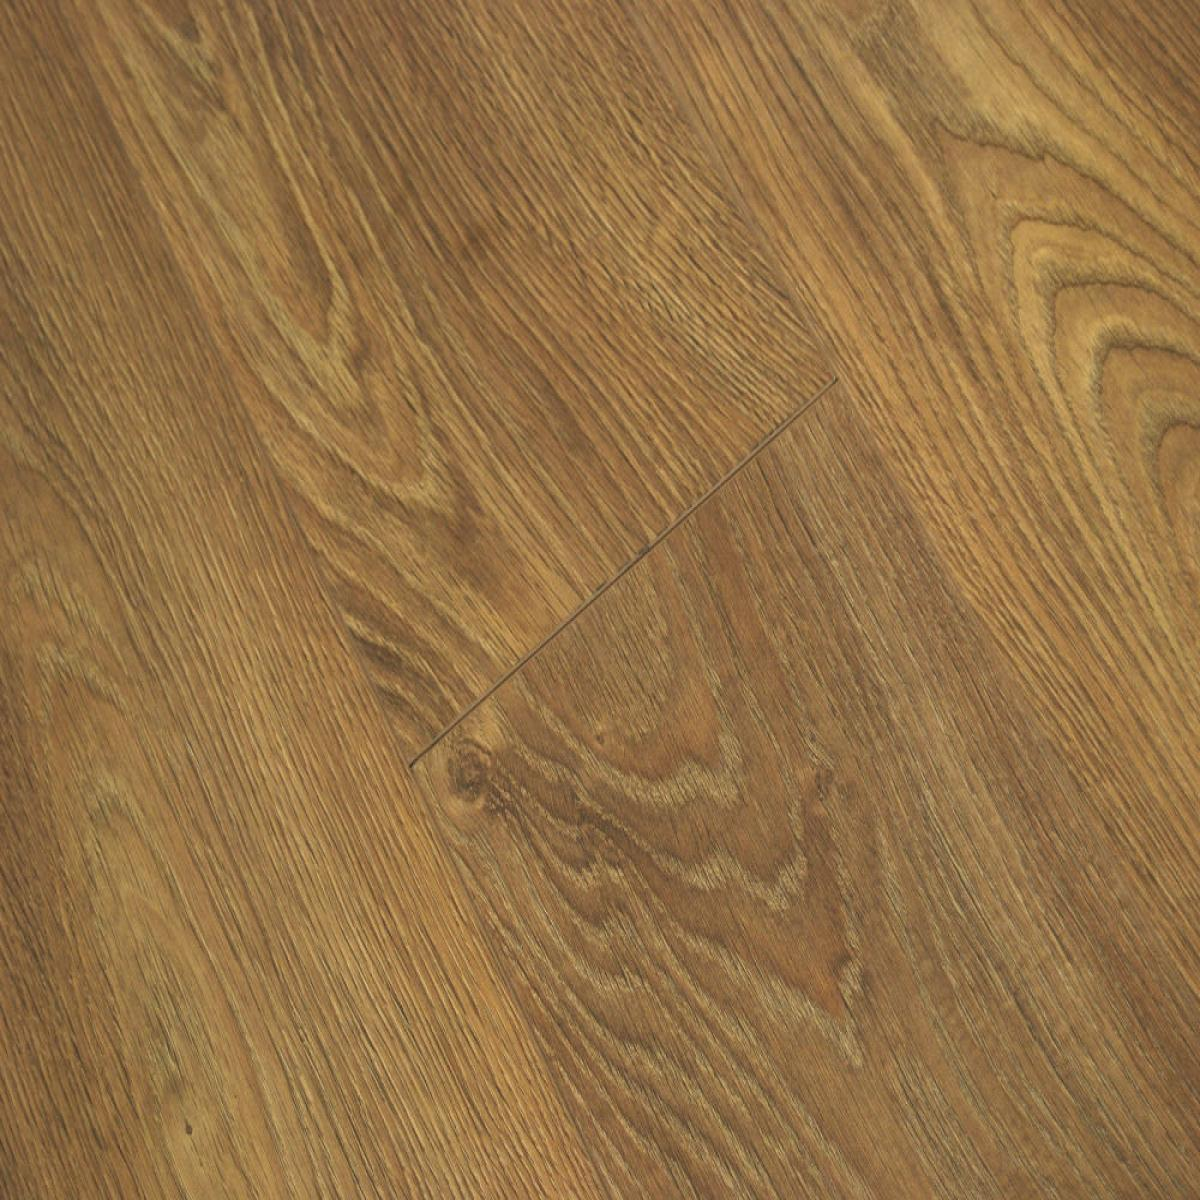 Kronoswiss Verbier Oak 12mm V Groove Ac5 Laminate Flooring Sample Piece